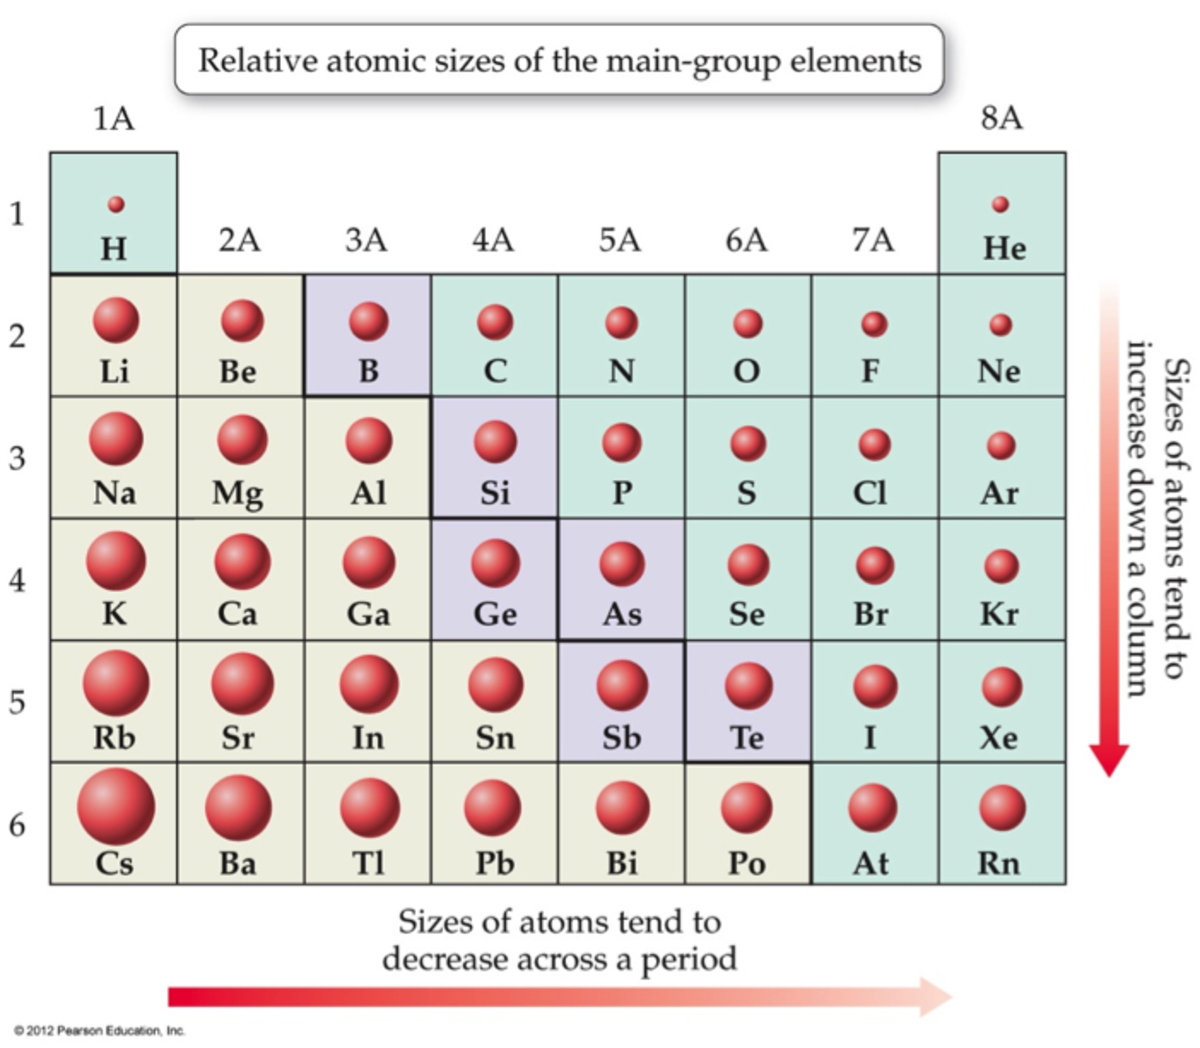 Atoms get smaller from left to right in a period.